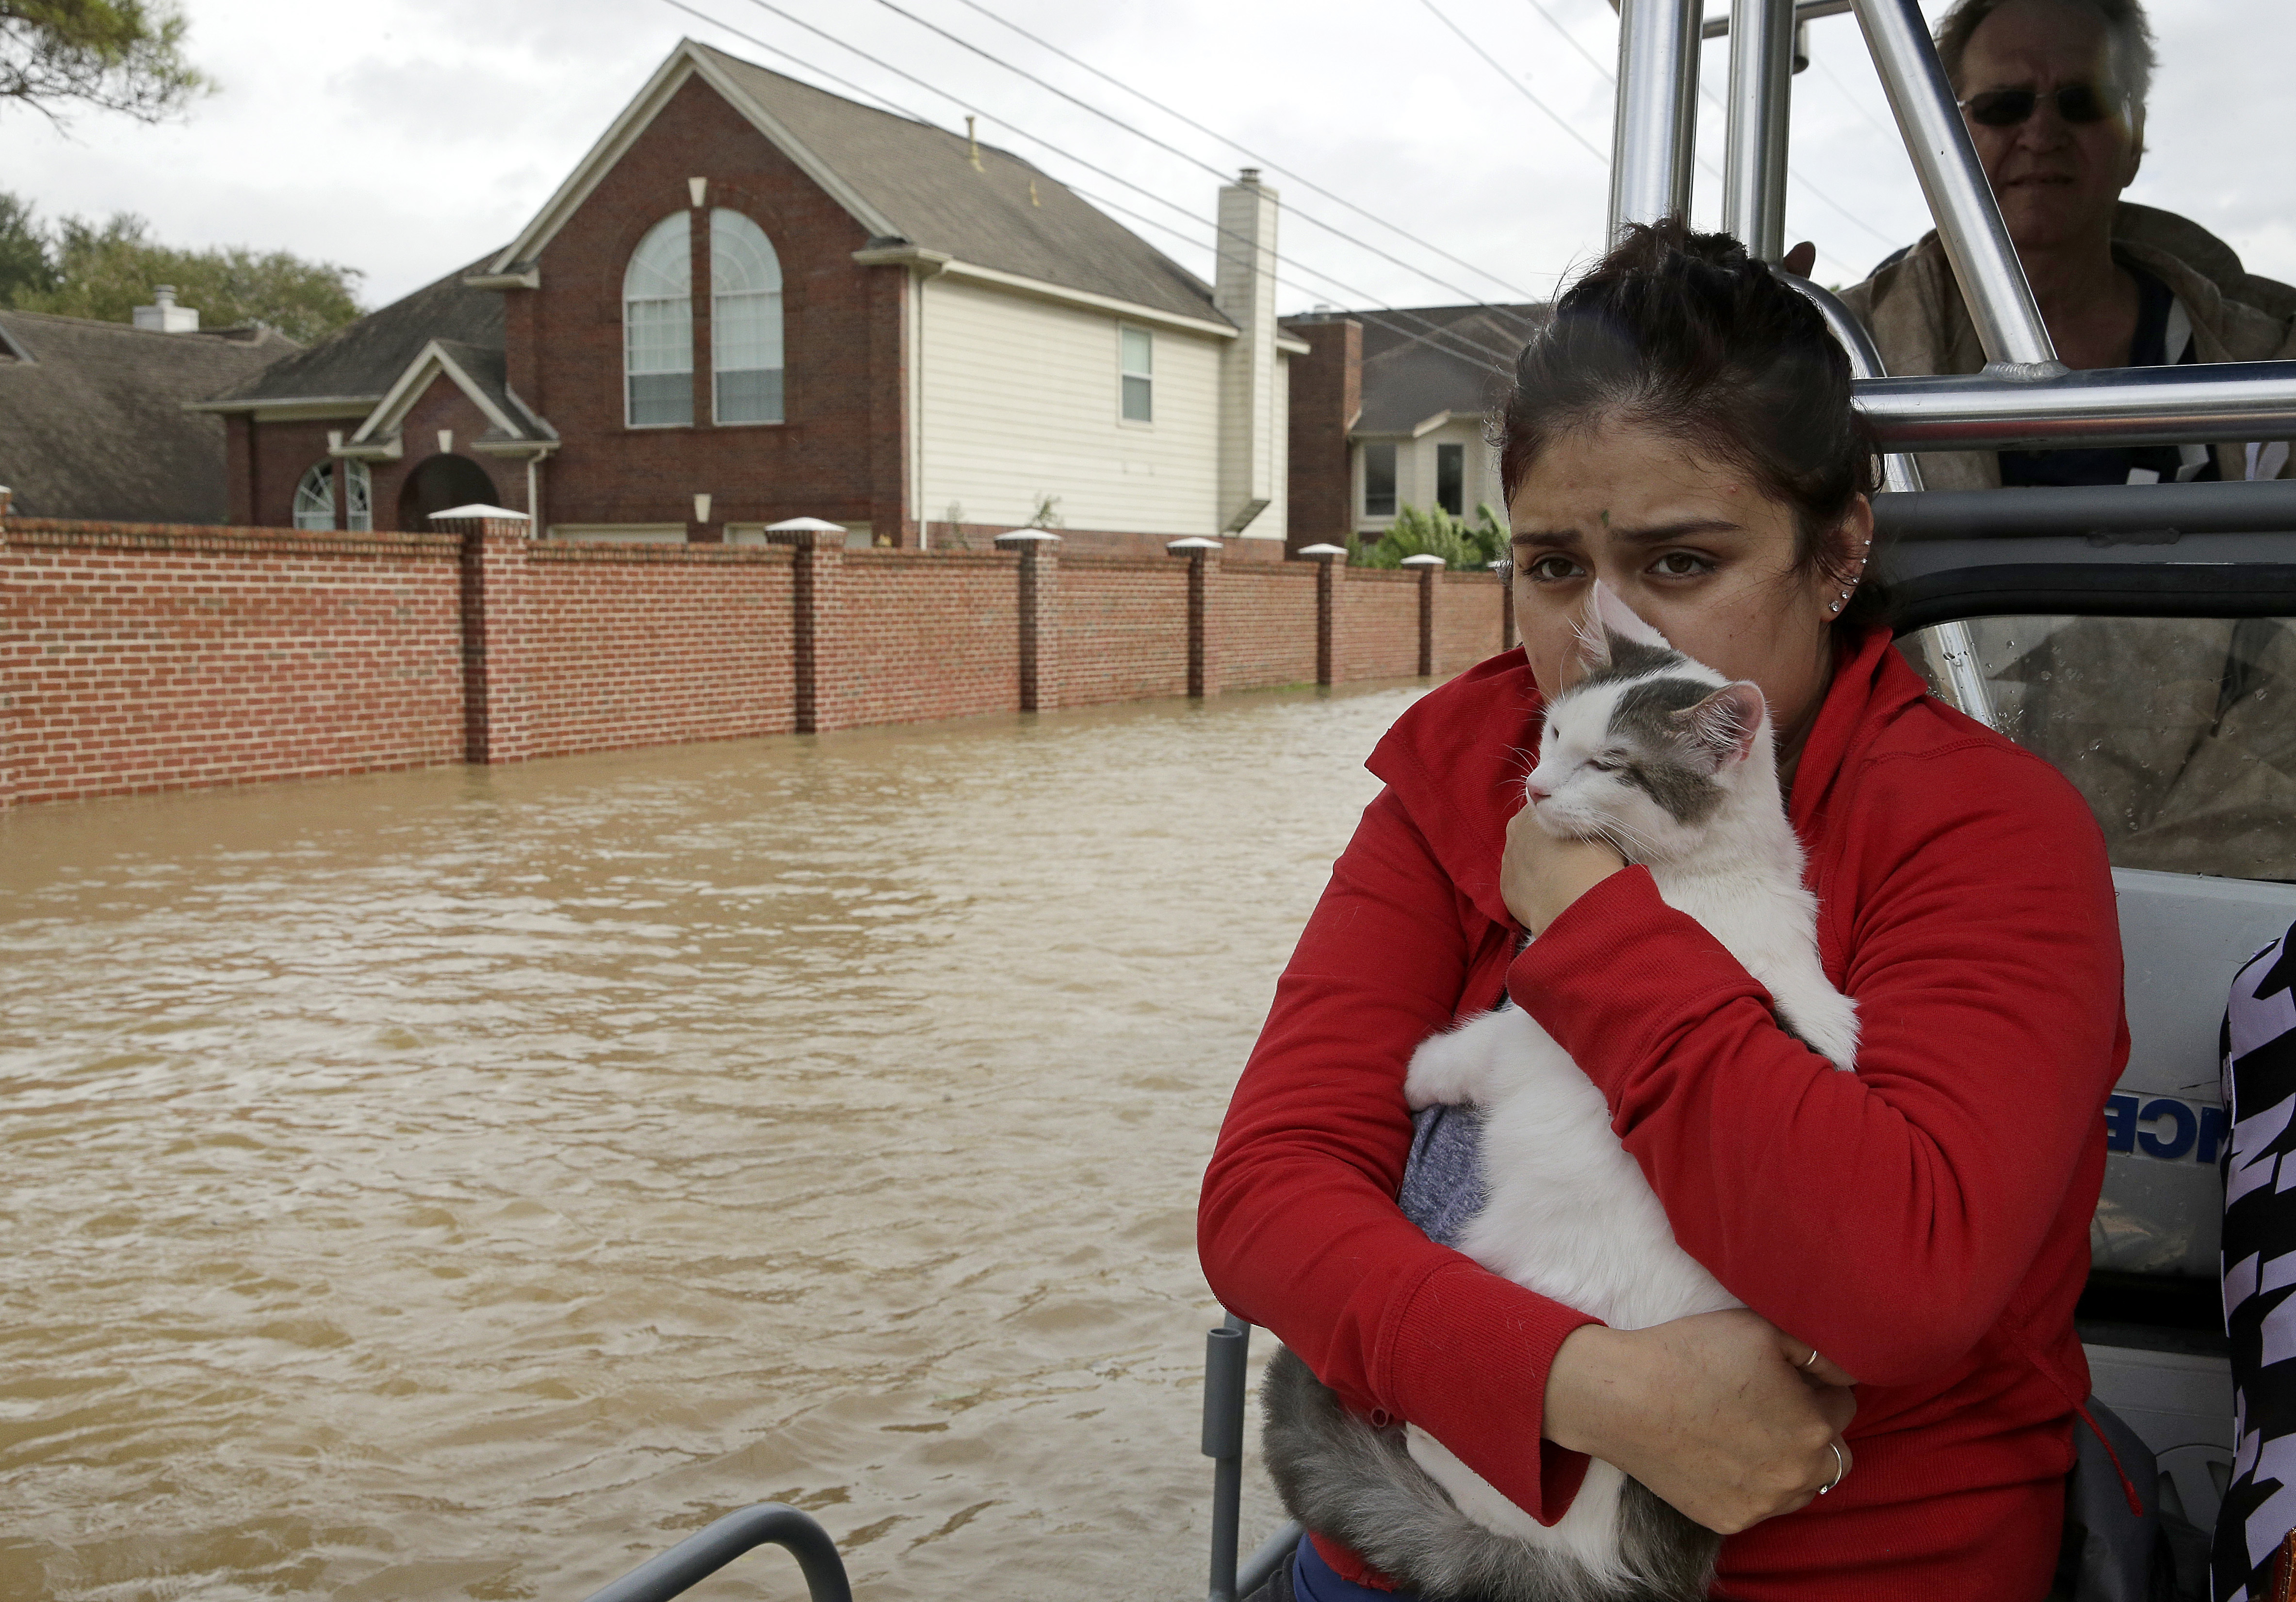 Undocumented immigrants hesitant to take help during Hurricane Harvey rescue efforts